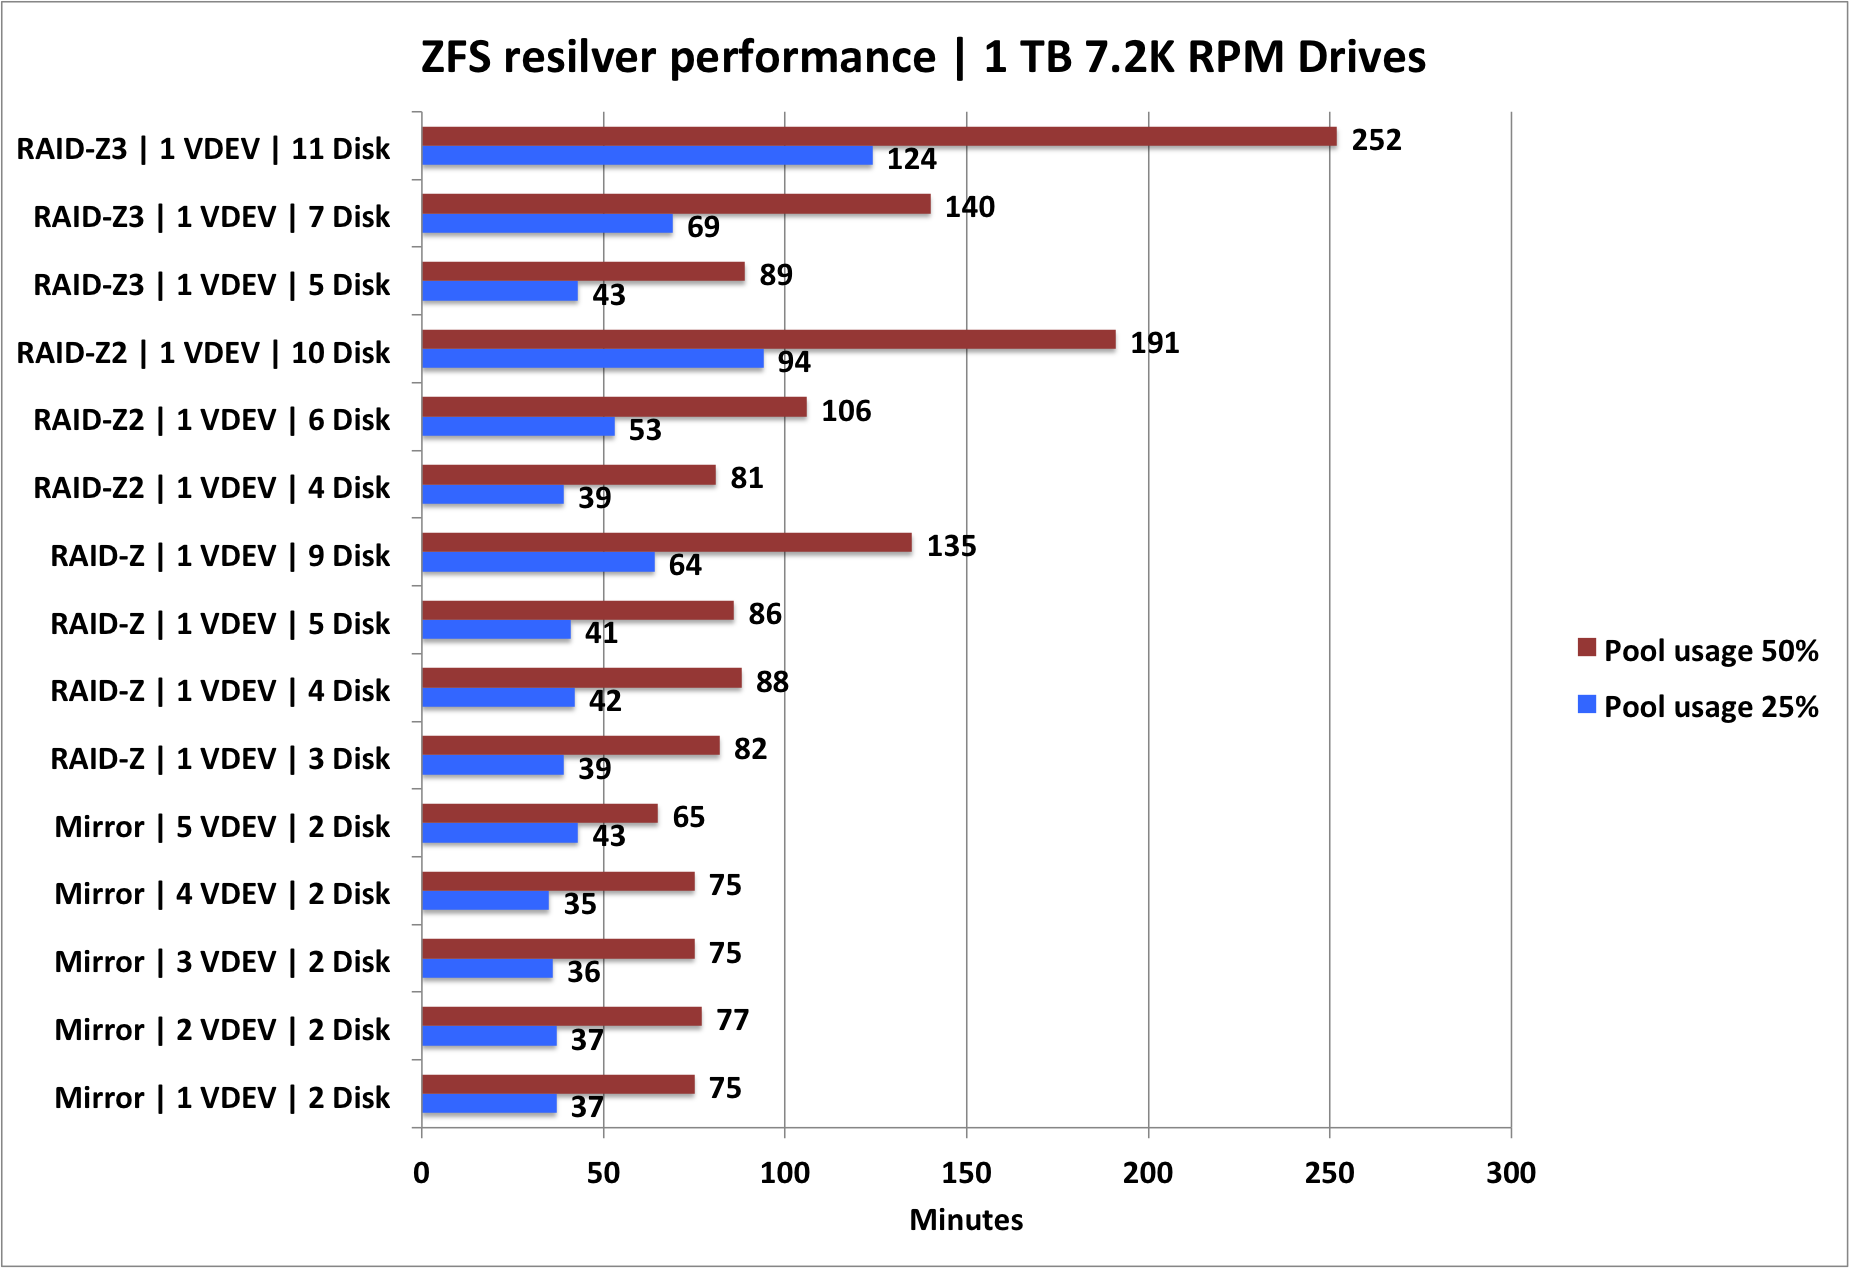 Zfs Resilver Performance Of Various Raid Schemas